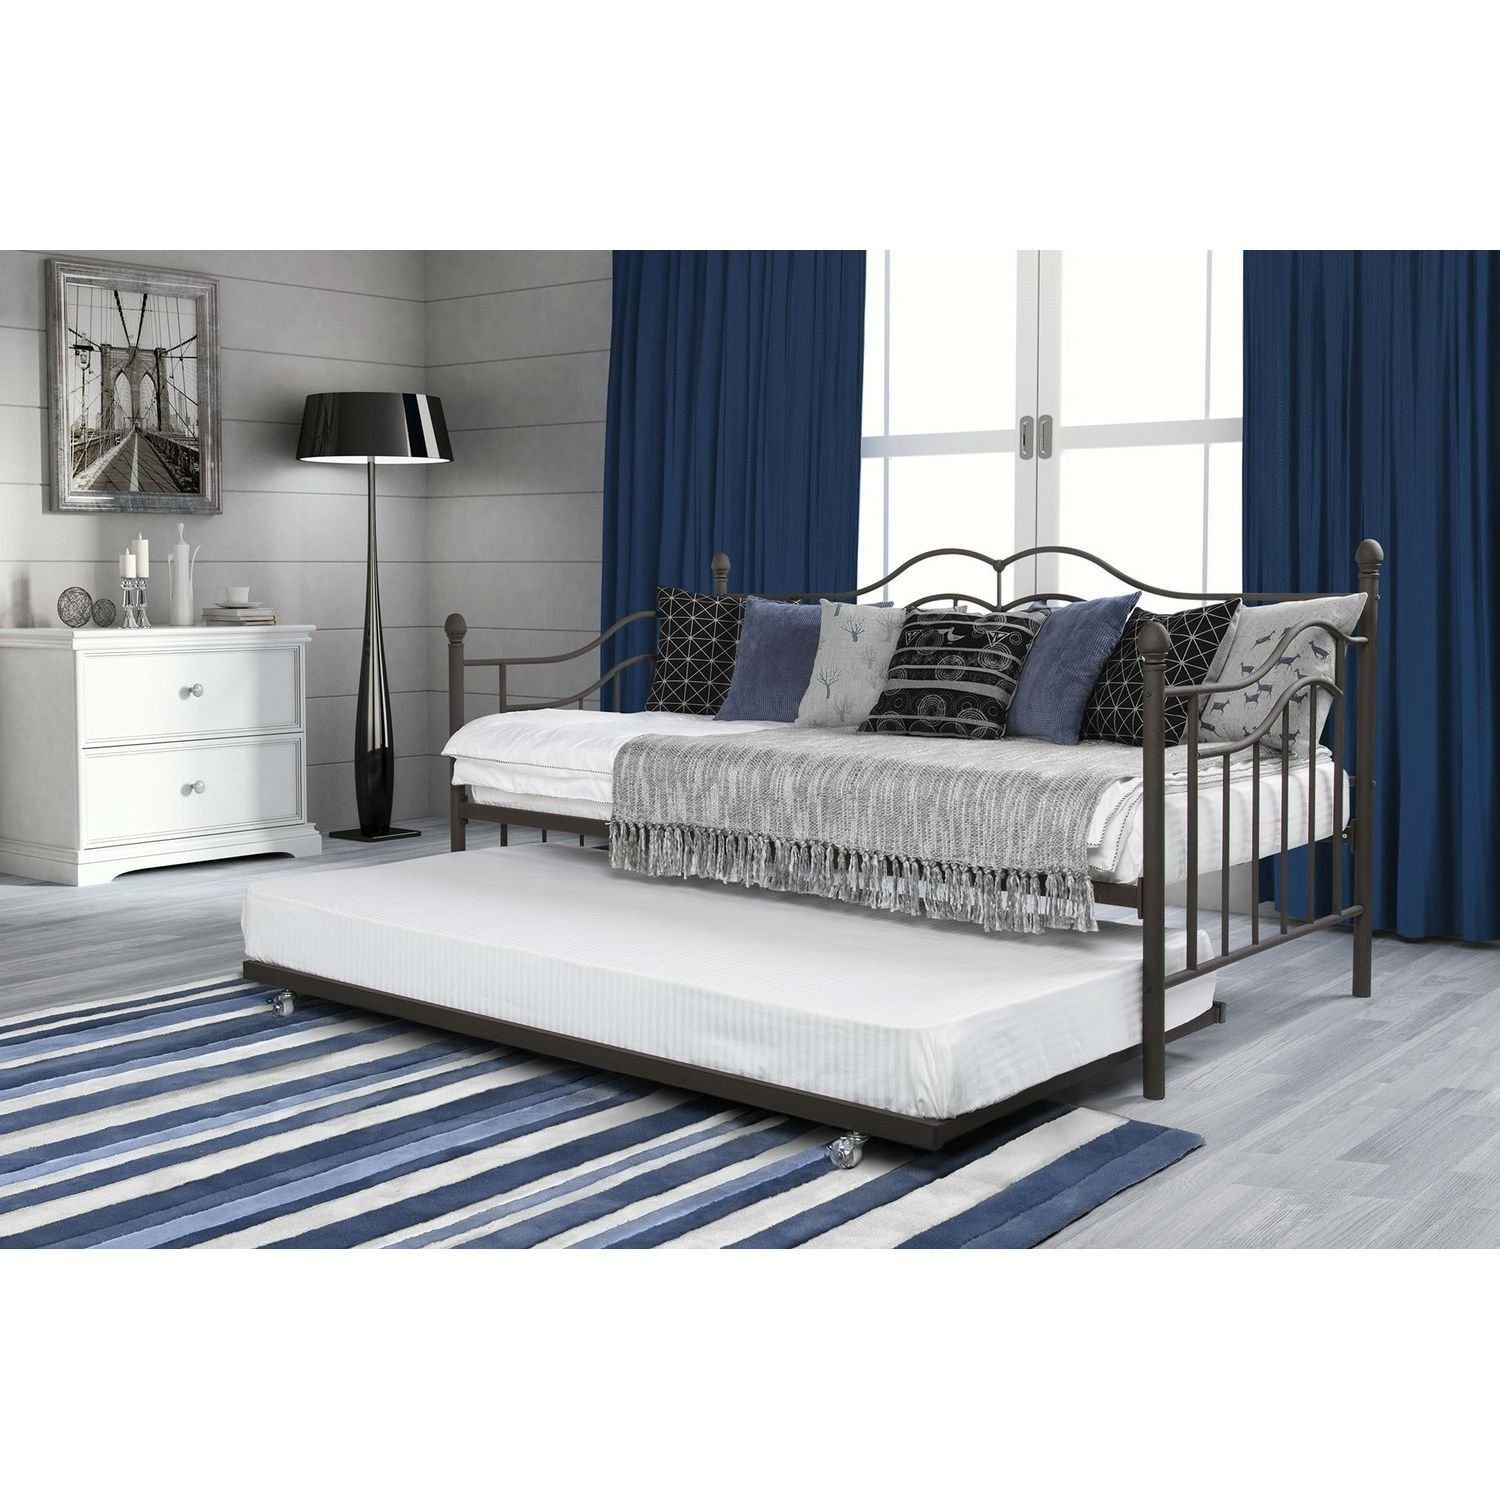 Twin loft bed craigslist  Twin Size Daybeds with Trundle Bed in Brushed Bronze Metal Finish